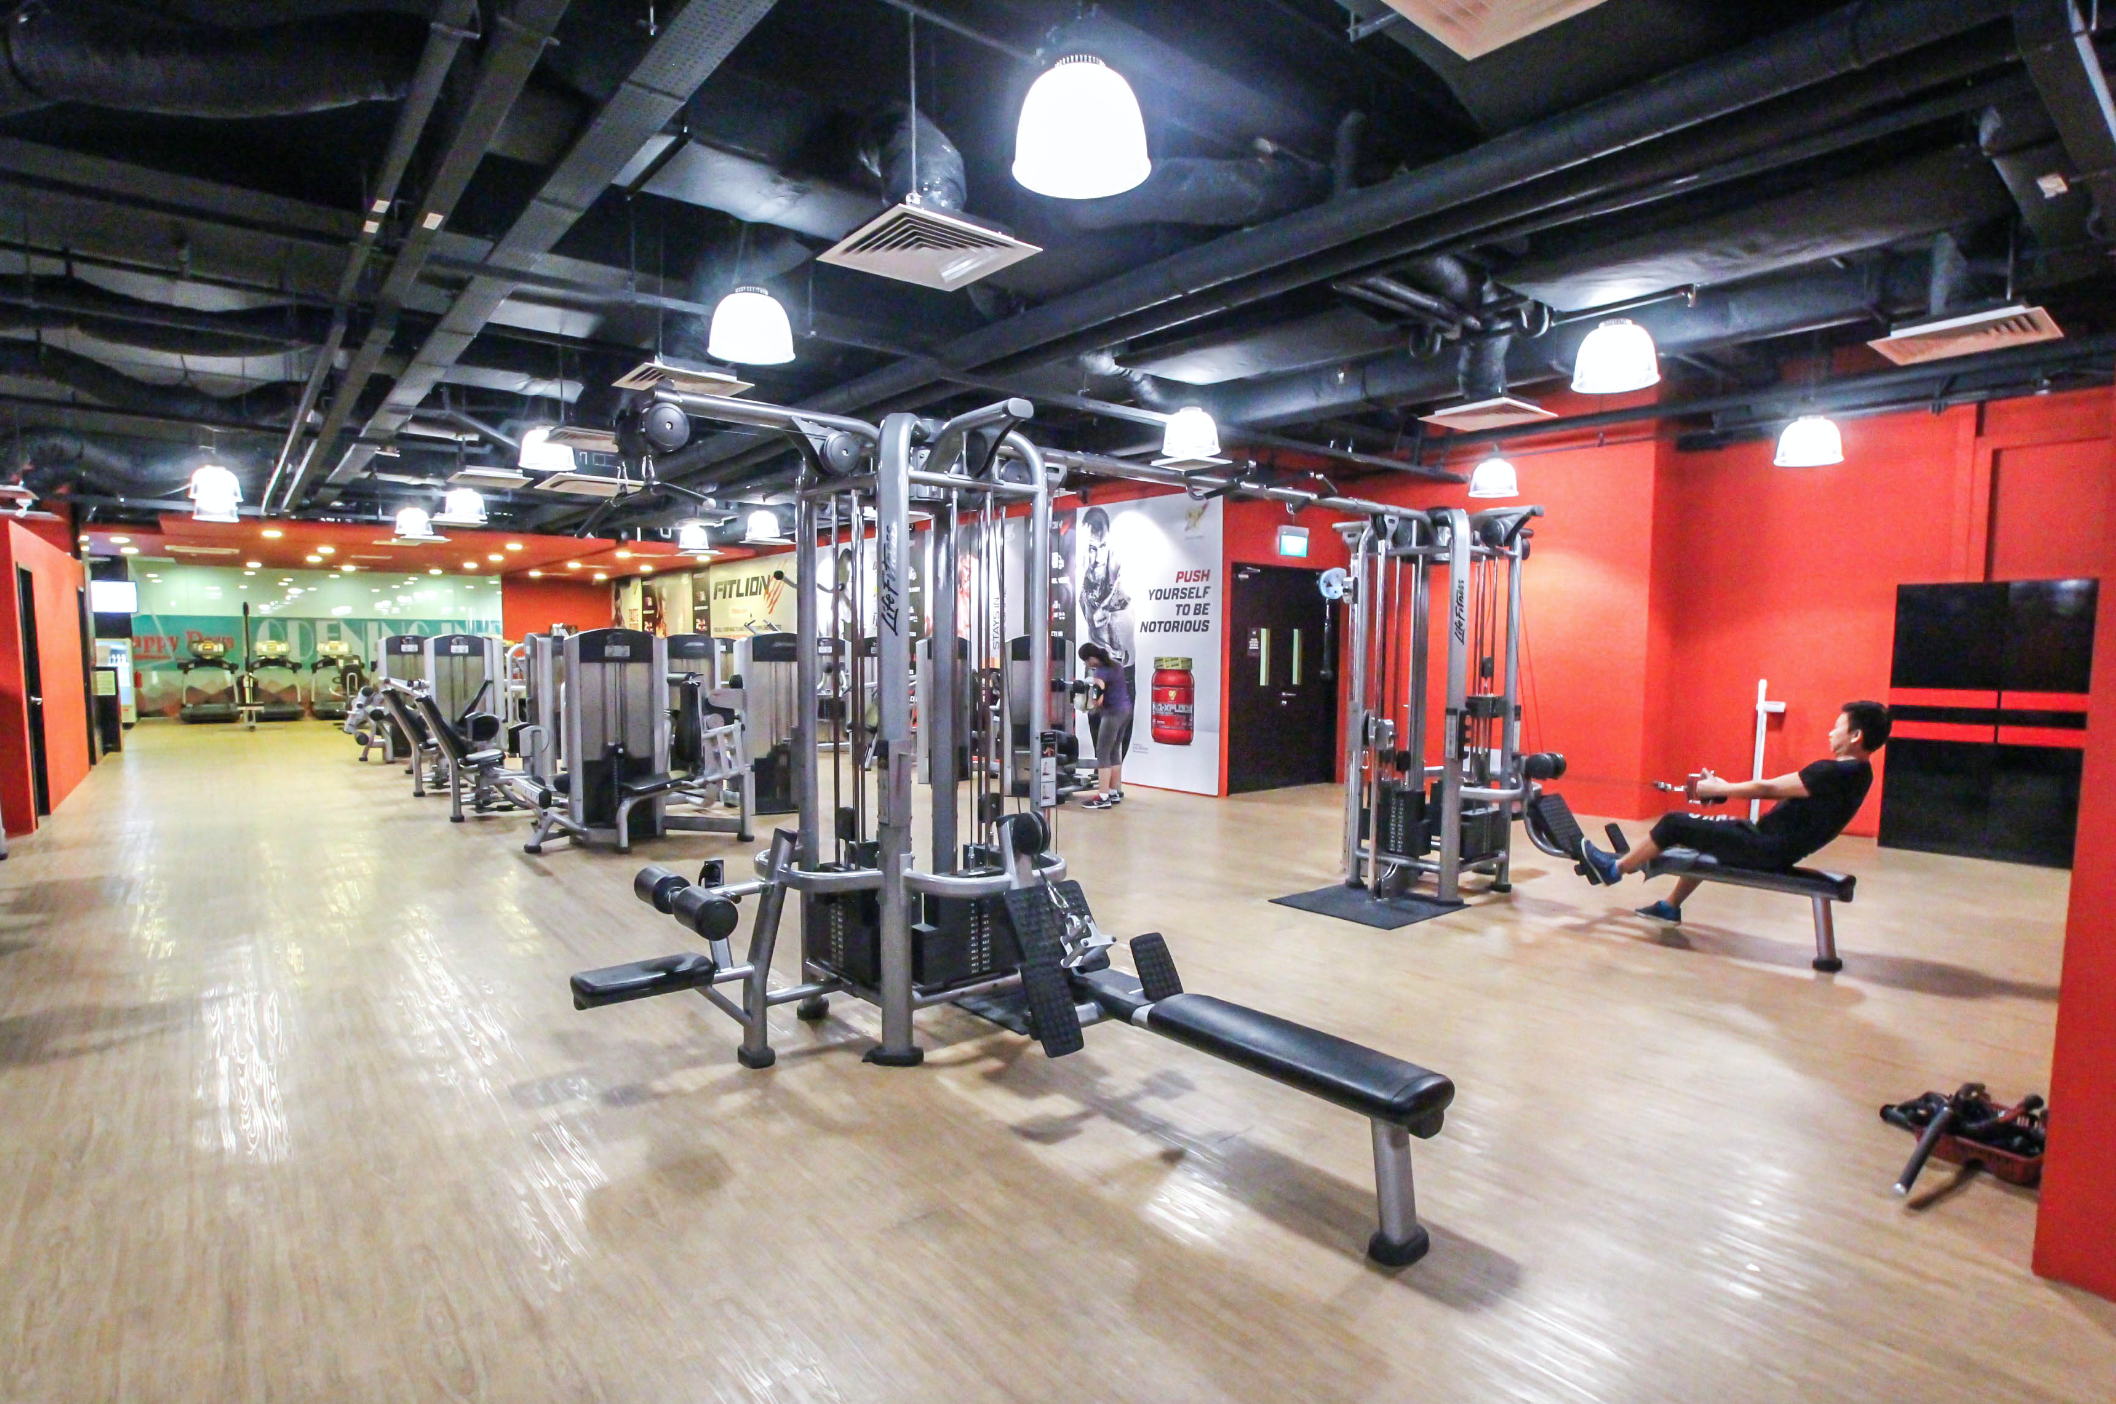 Gym at bedok singapore hours per entry fee